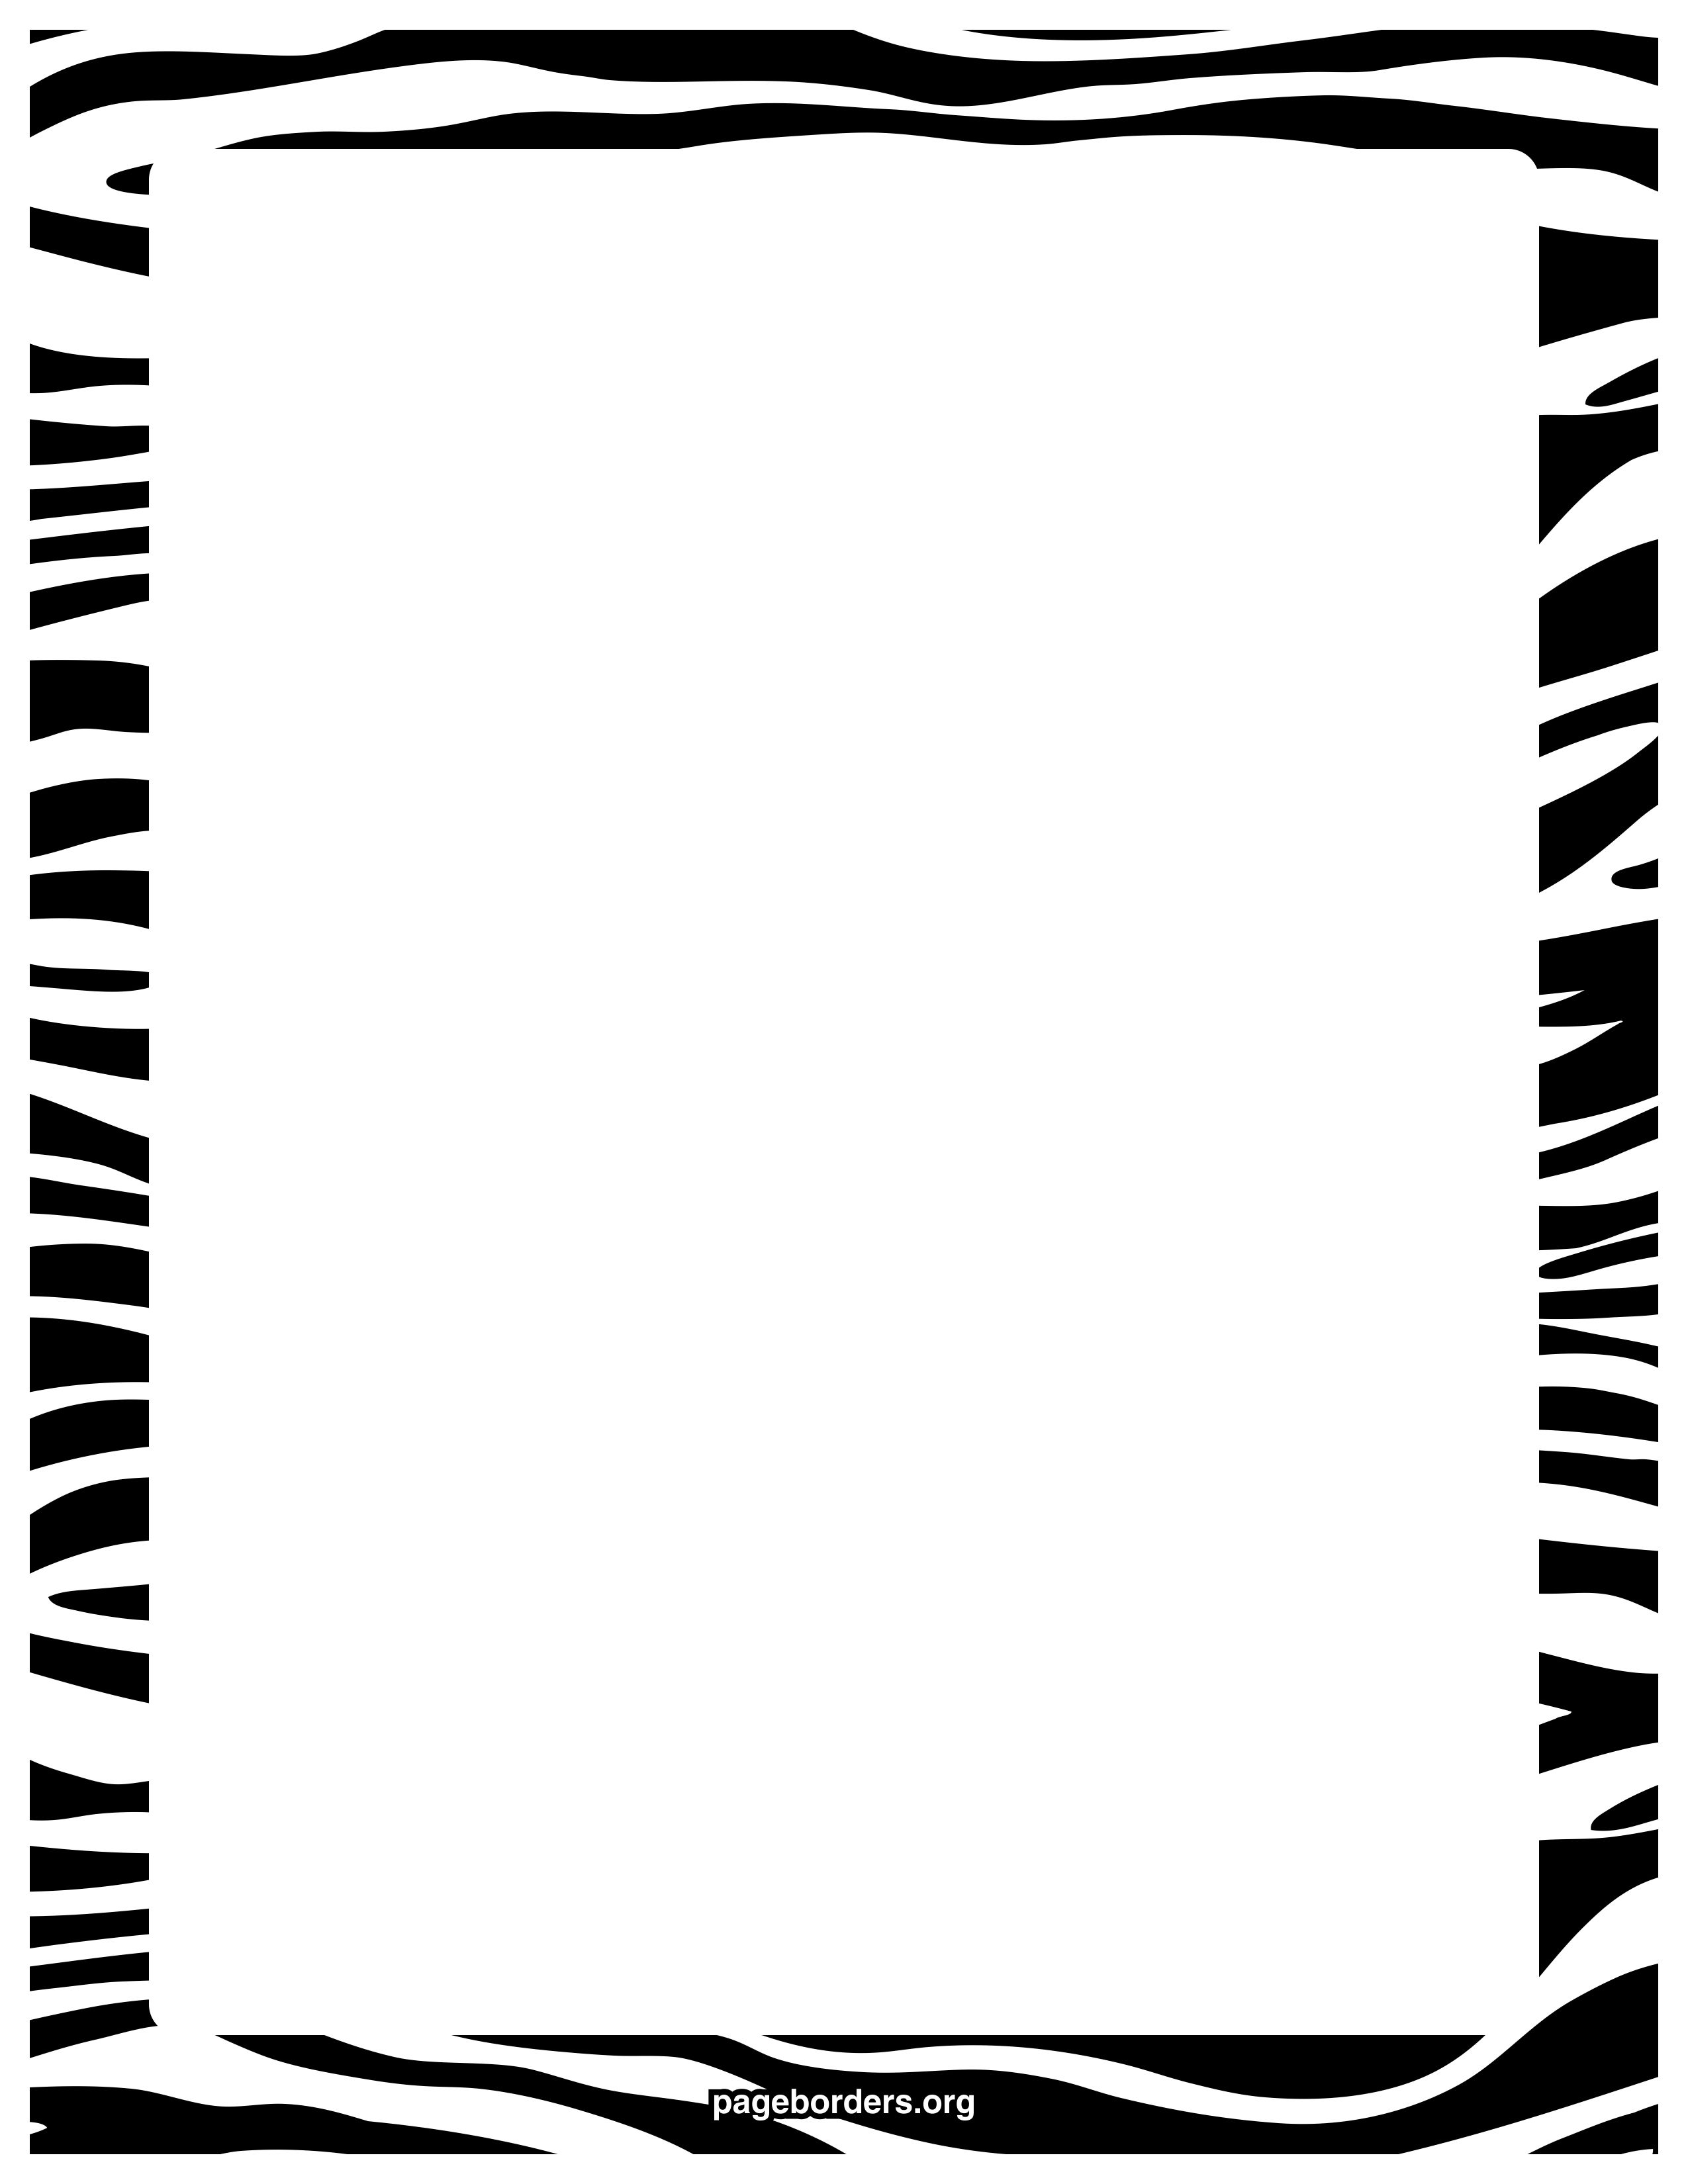 Zebra print border watermarkedg 25503300 pixels crafts free zebra print border templates including printable border paper and clip art versions voltagebd